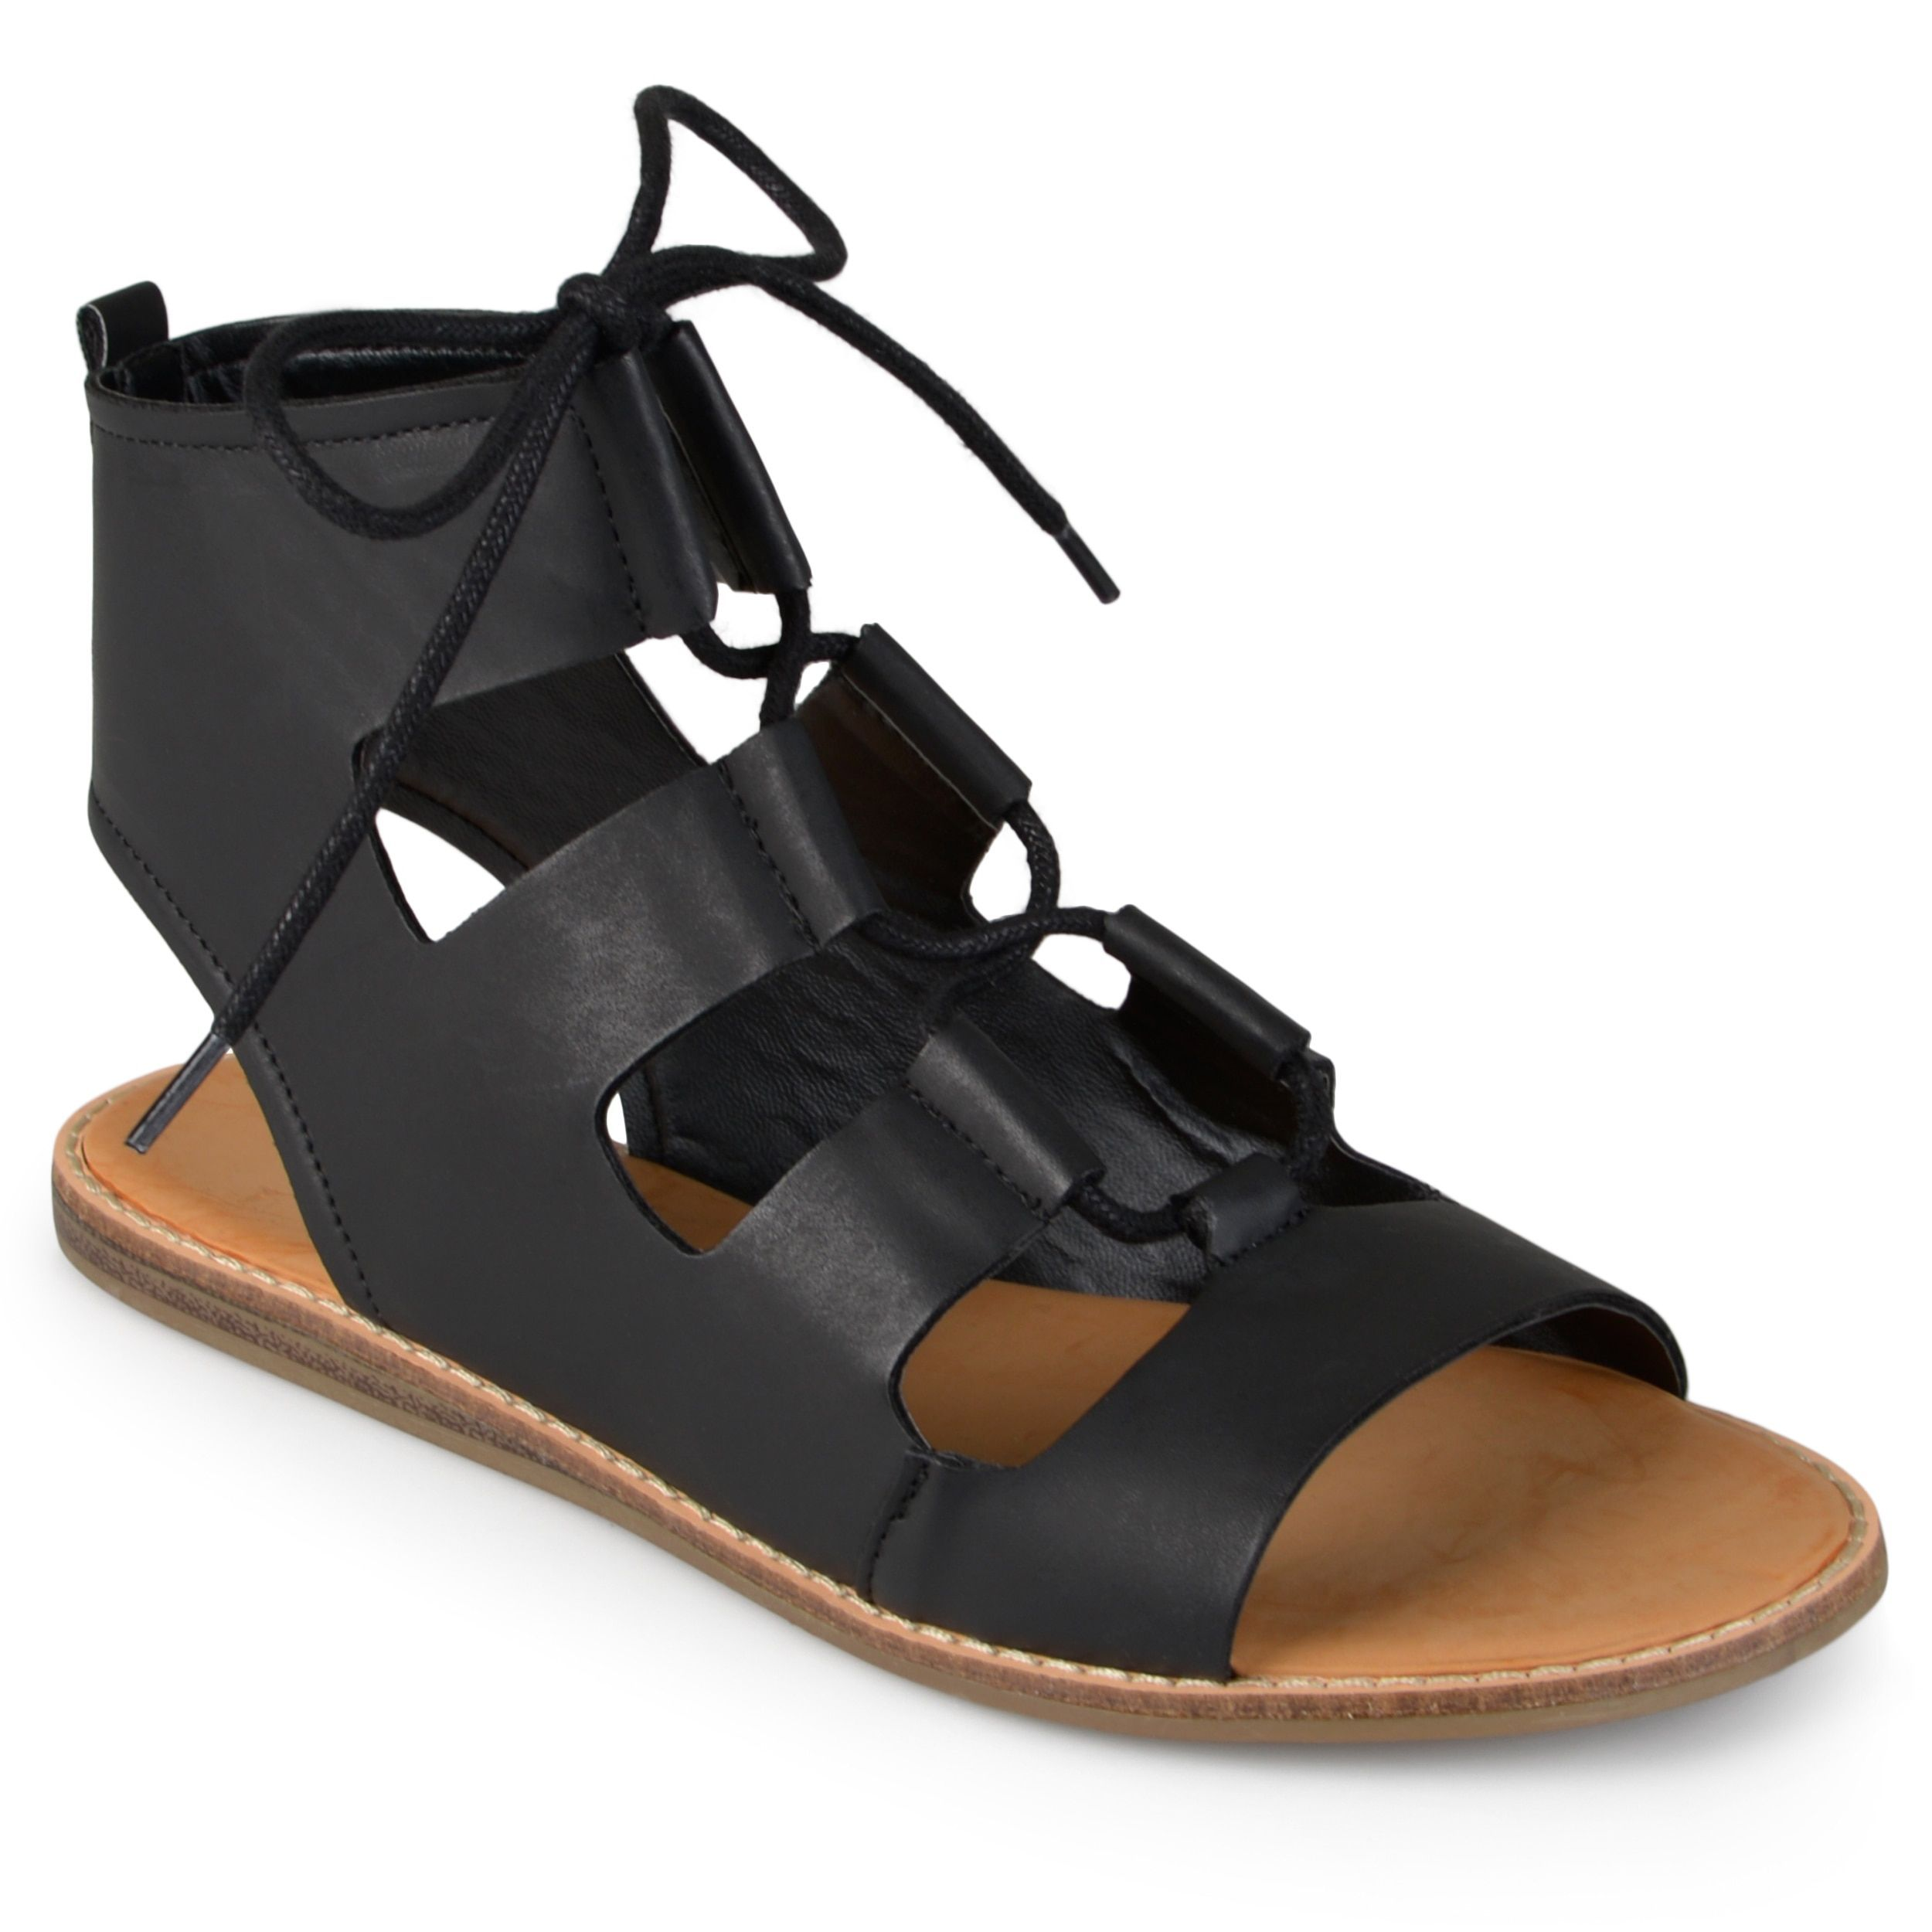 Journee Collection Women's 'Ila' Lace-up Flat Gladiator Sandals